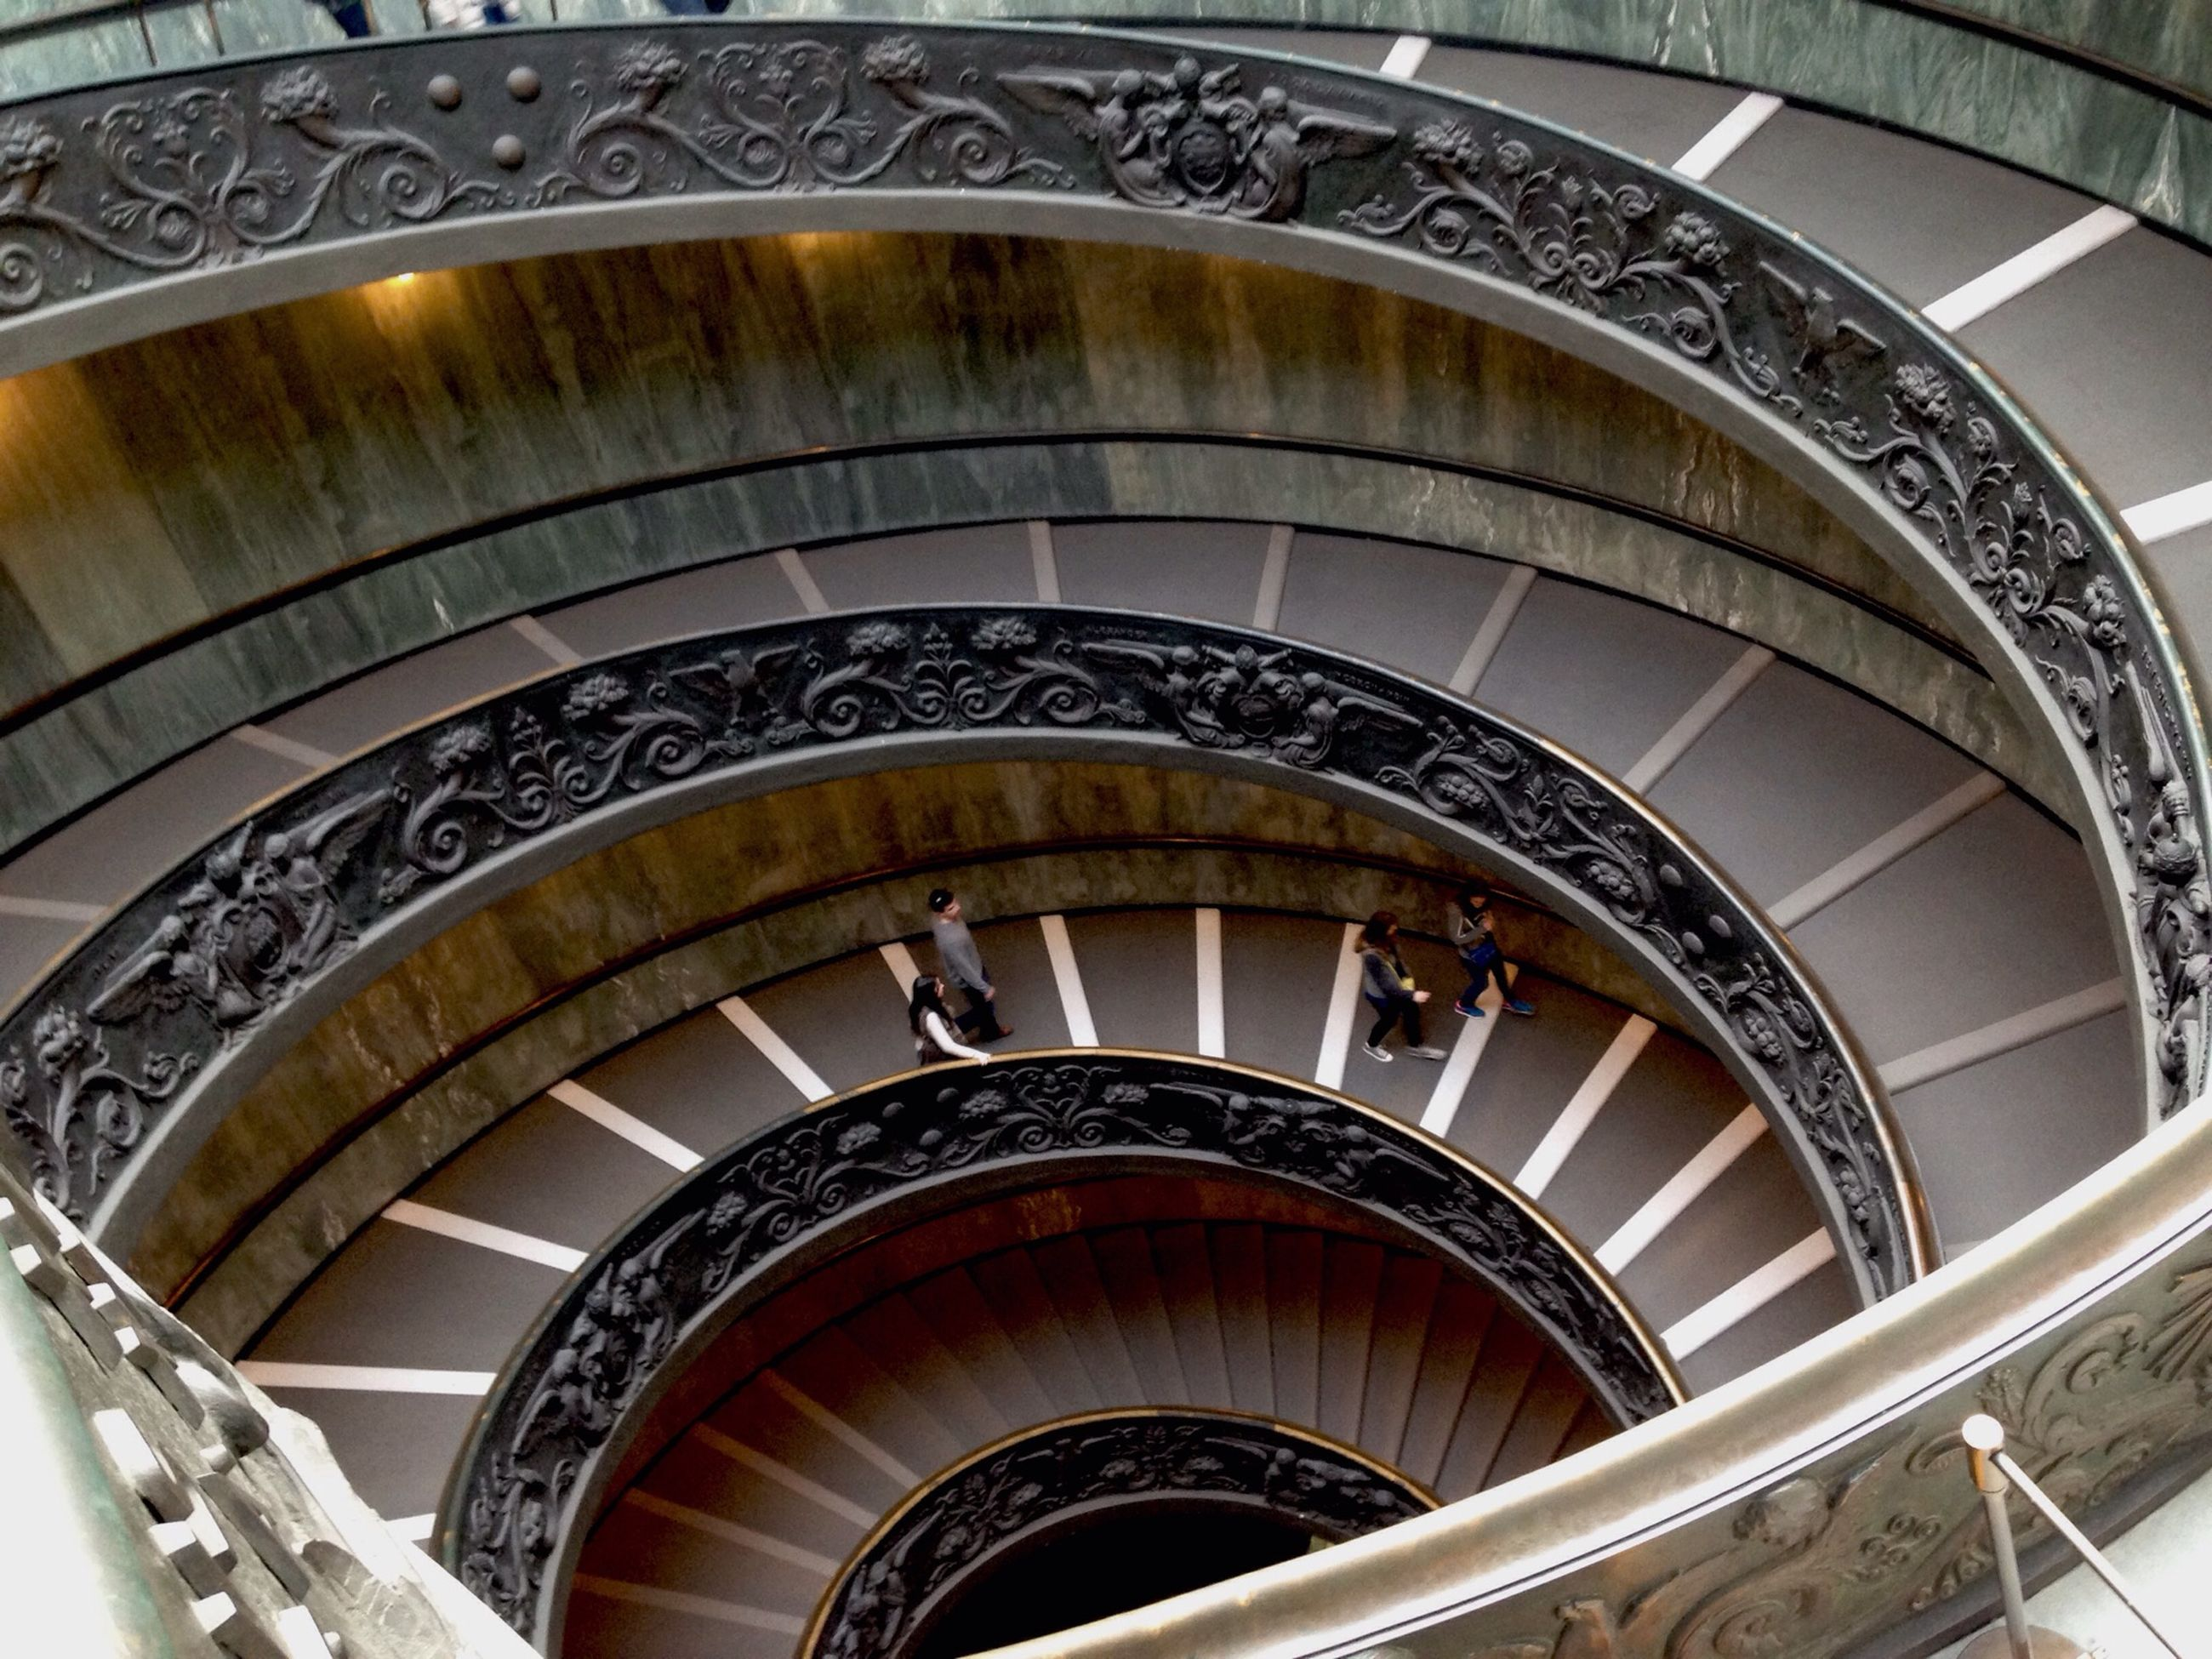 staircase, steps and staircases, steps, architecture, built structure, indoors, spiral staircase, railing, spiral, arch, low angle view, pattern, design, stairs, ceiling, architectural feature, directly below, high angle view, building, building exterior